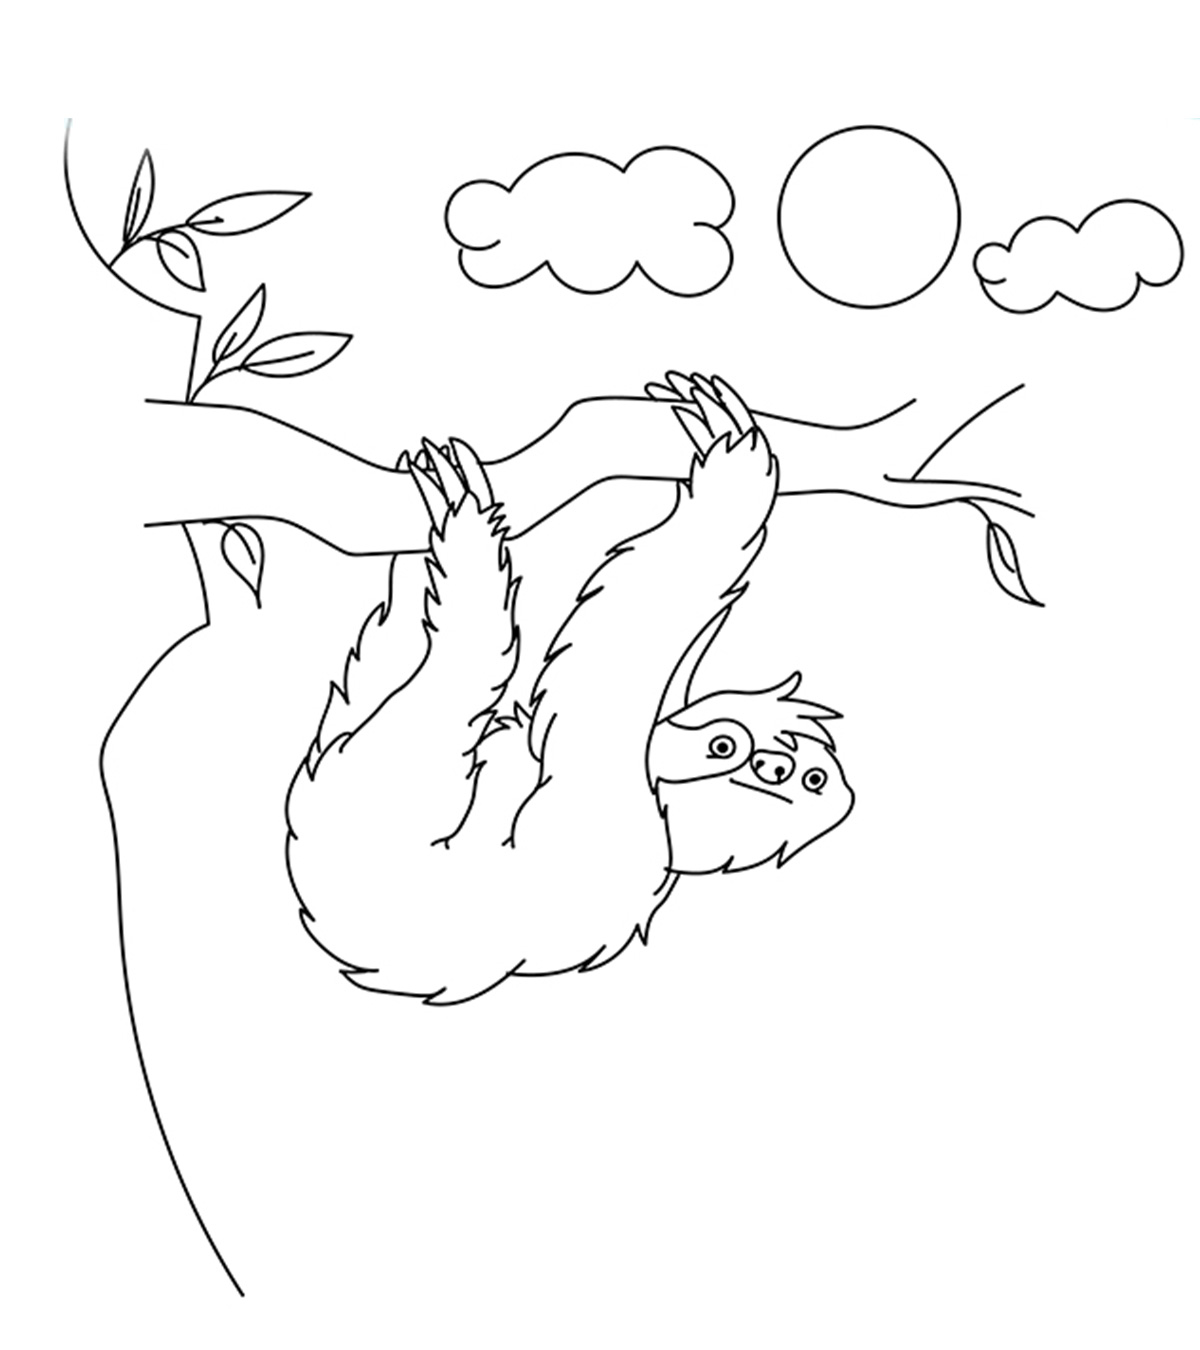 sloth pictures to print printable sloth coloring pages gallery free coloring sheets print pictures to sloth